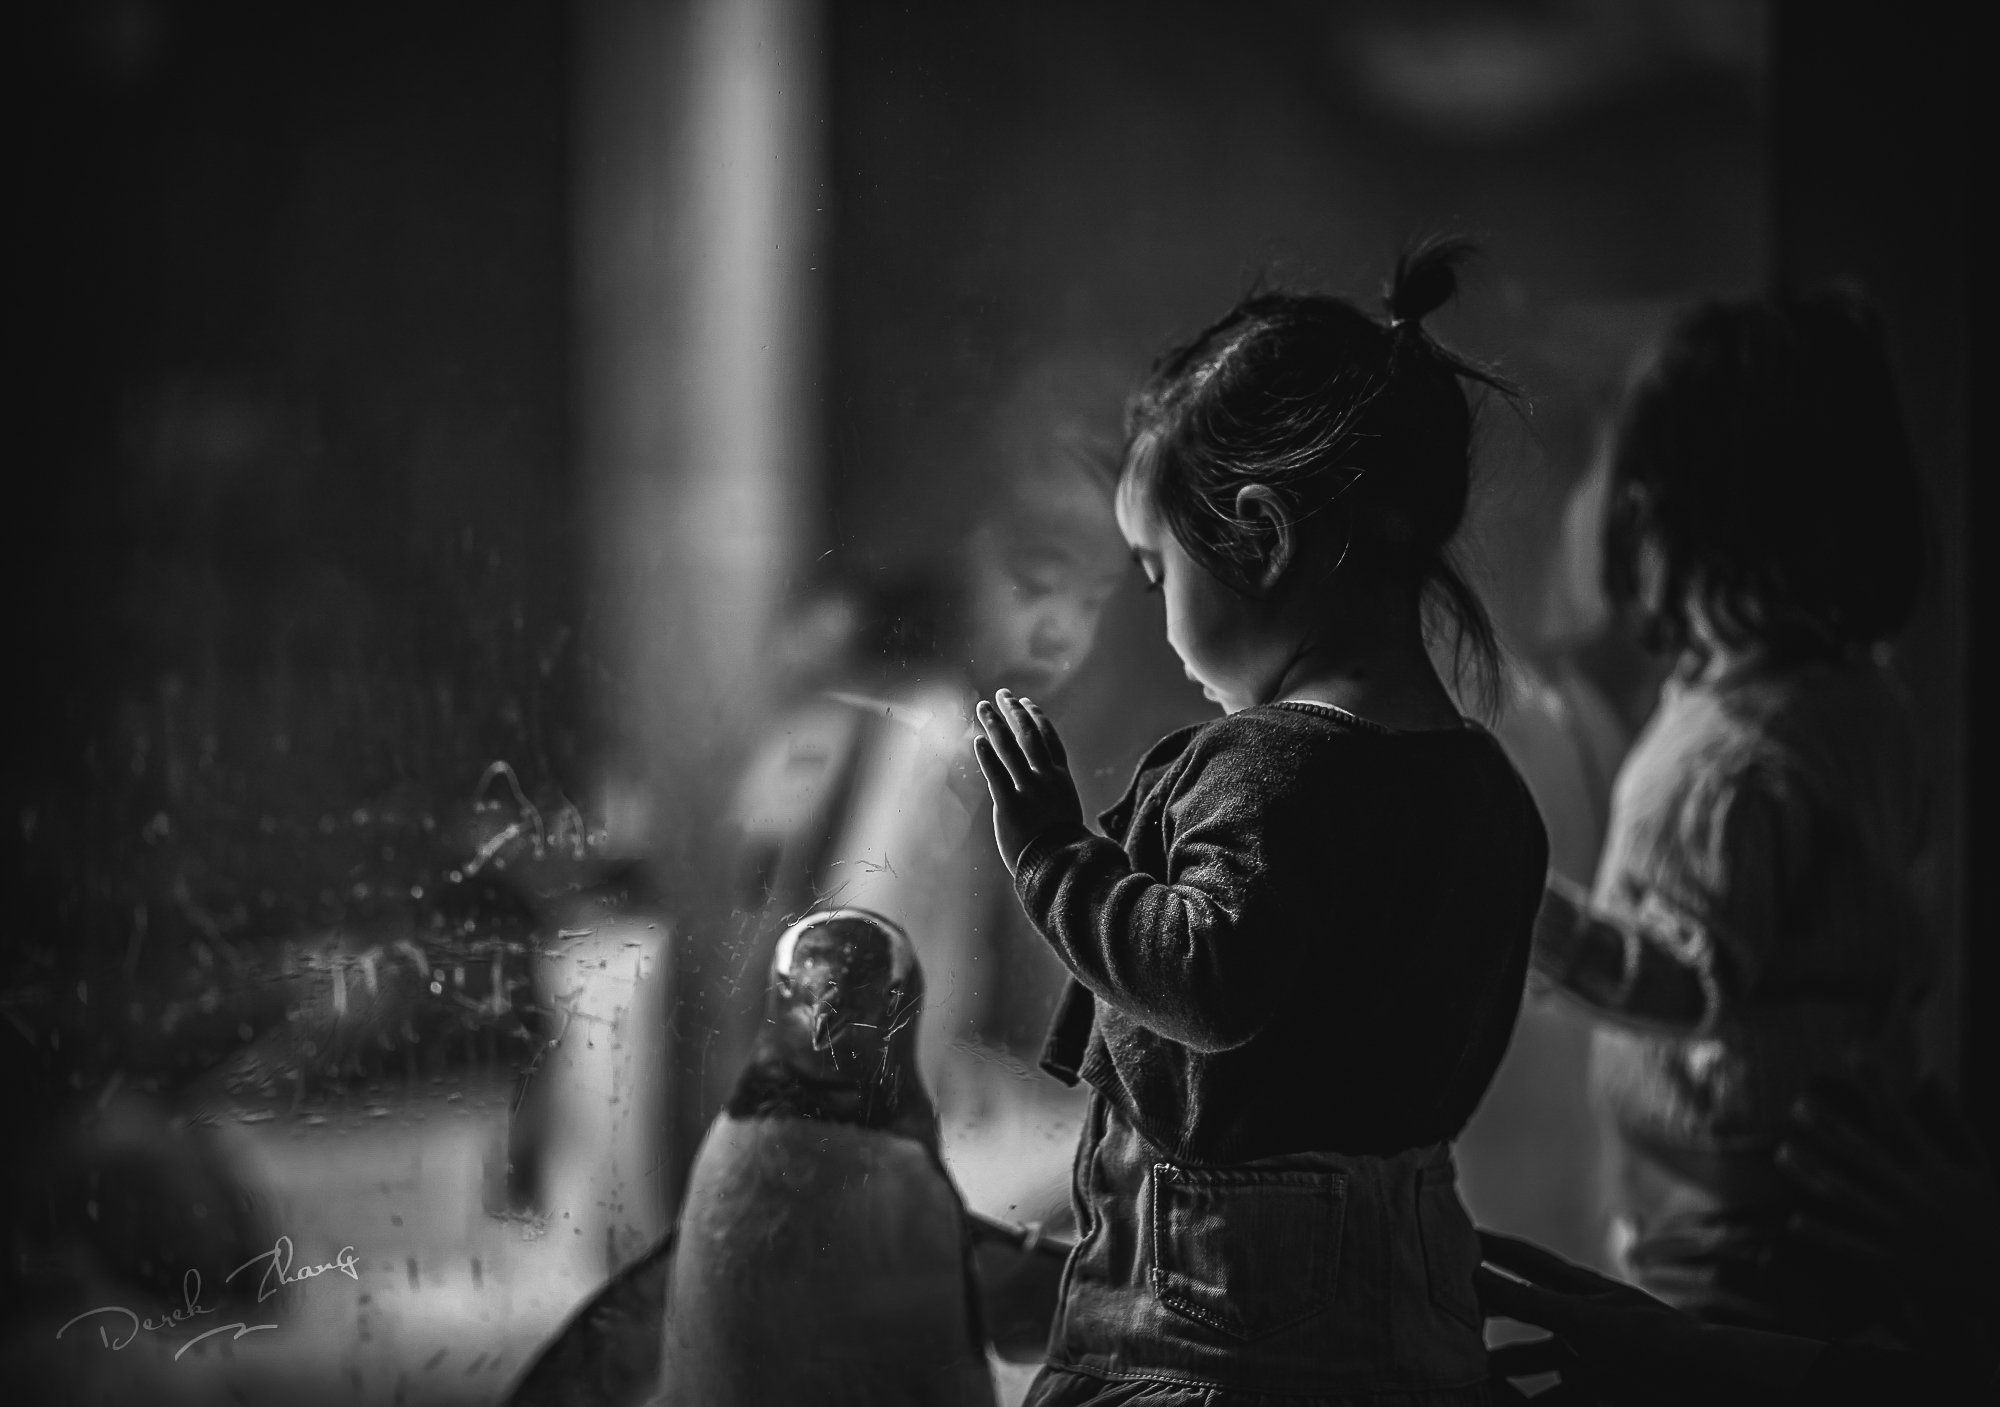 kid, child, girl, animal, penguin, glass, mirror, watching, Derek Zhang